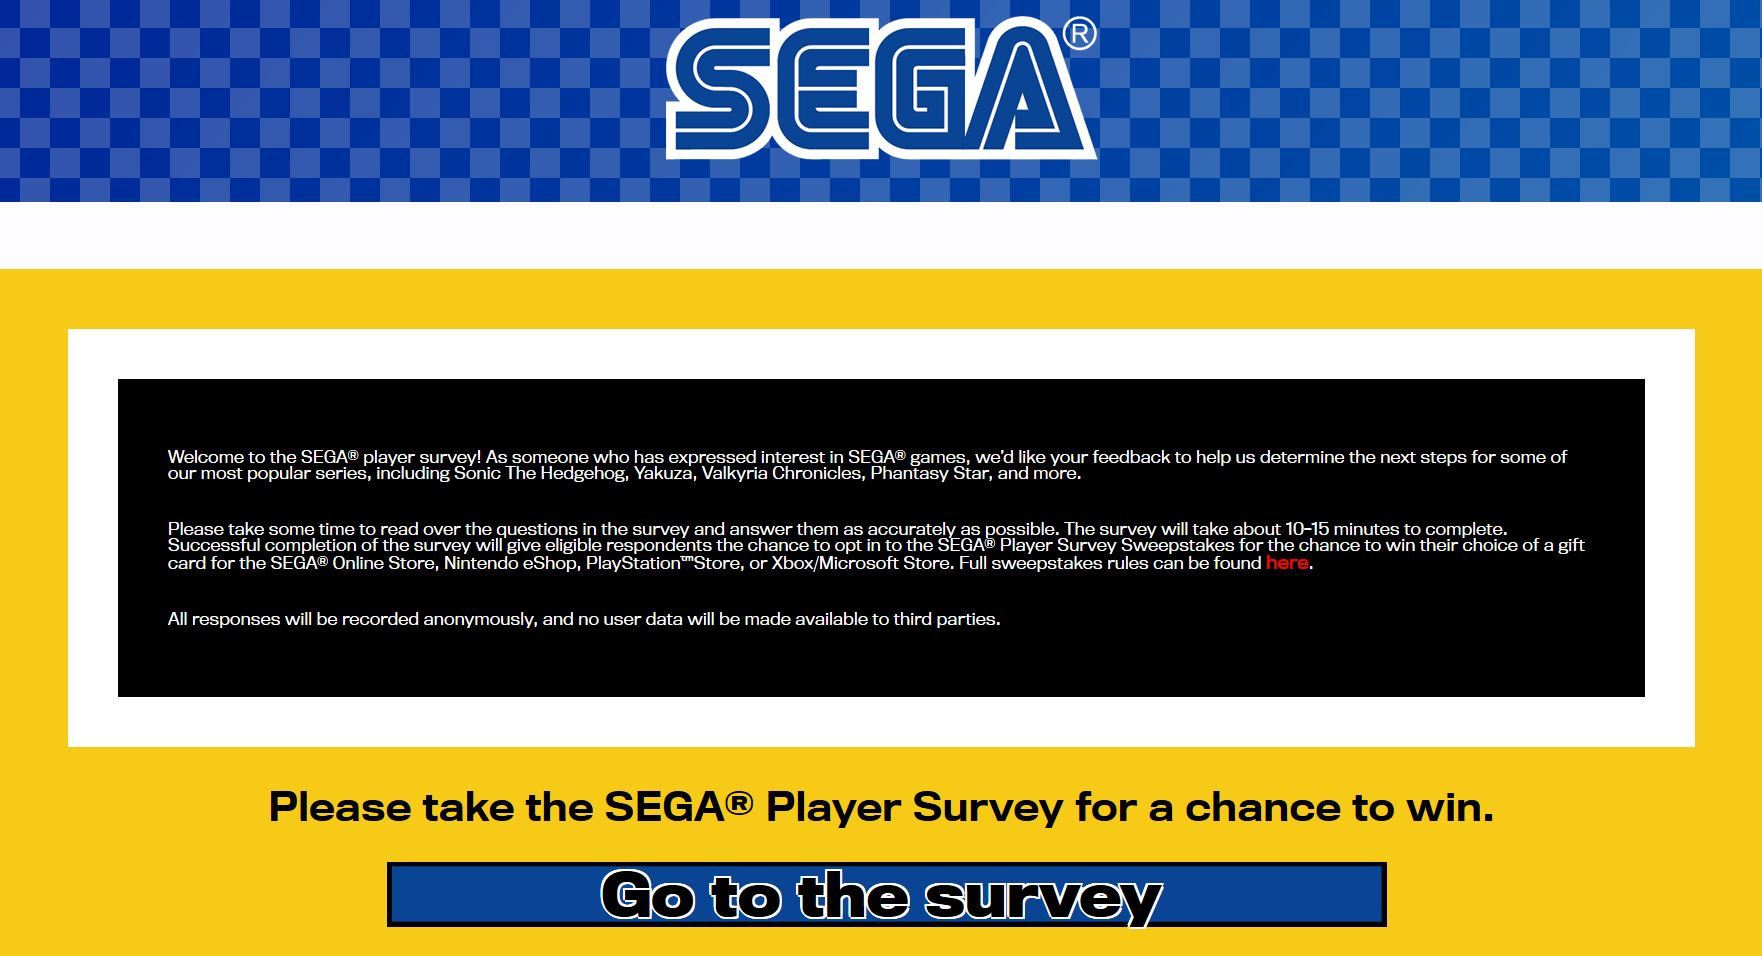 New Us Sega Survey Asks Fans To Determine Next Steps For Sonic The Hedgehog Yakuza Valkyria Chronicles Phantasy Star Franchises Segadriven